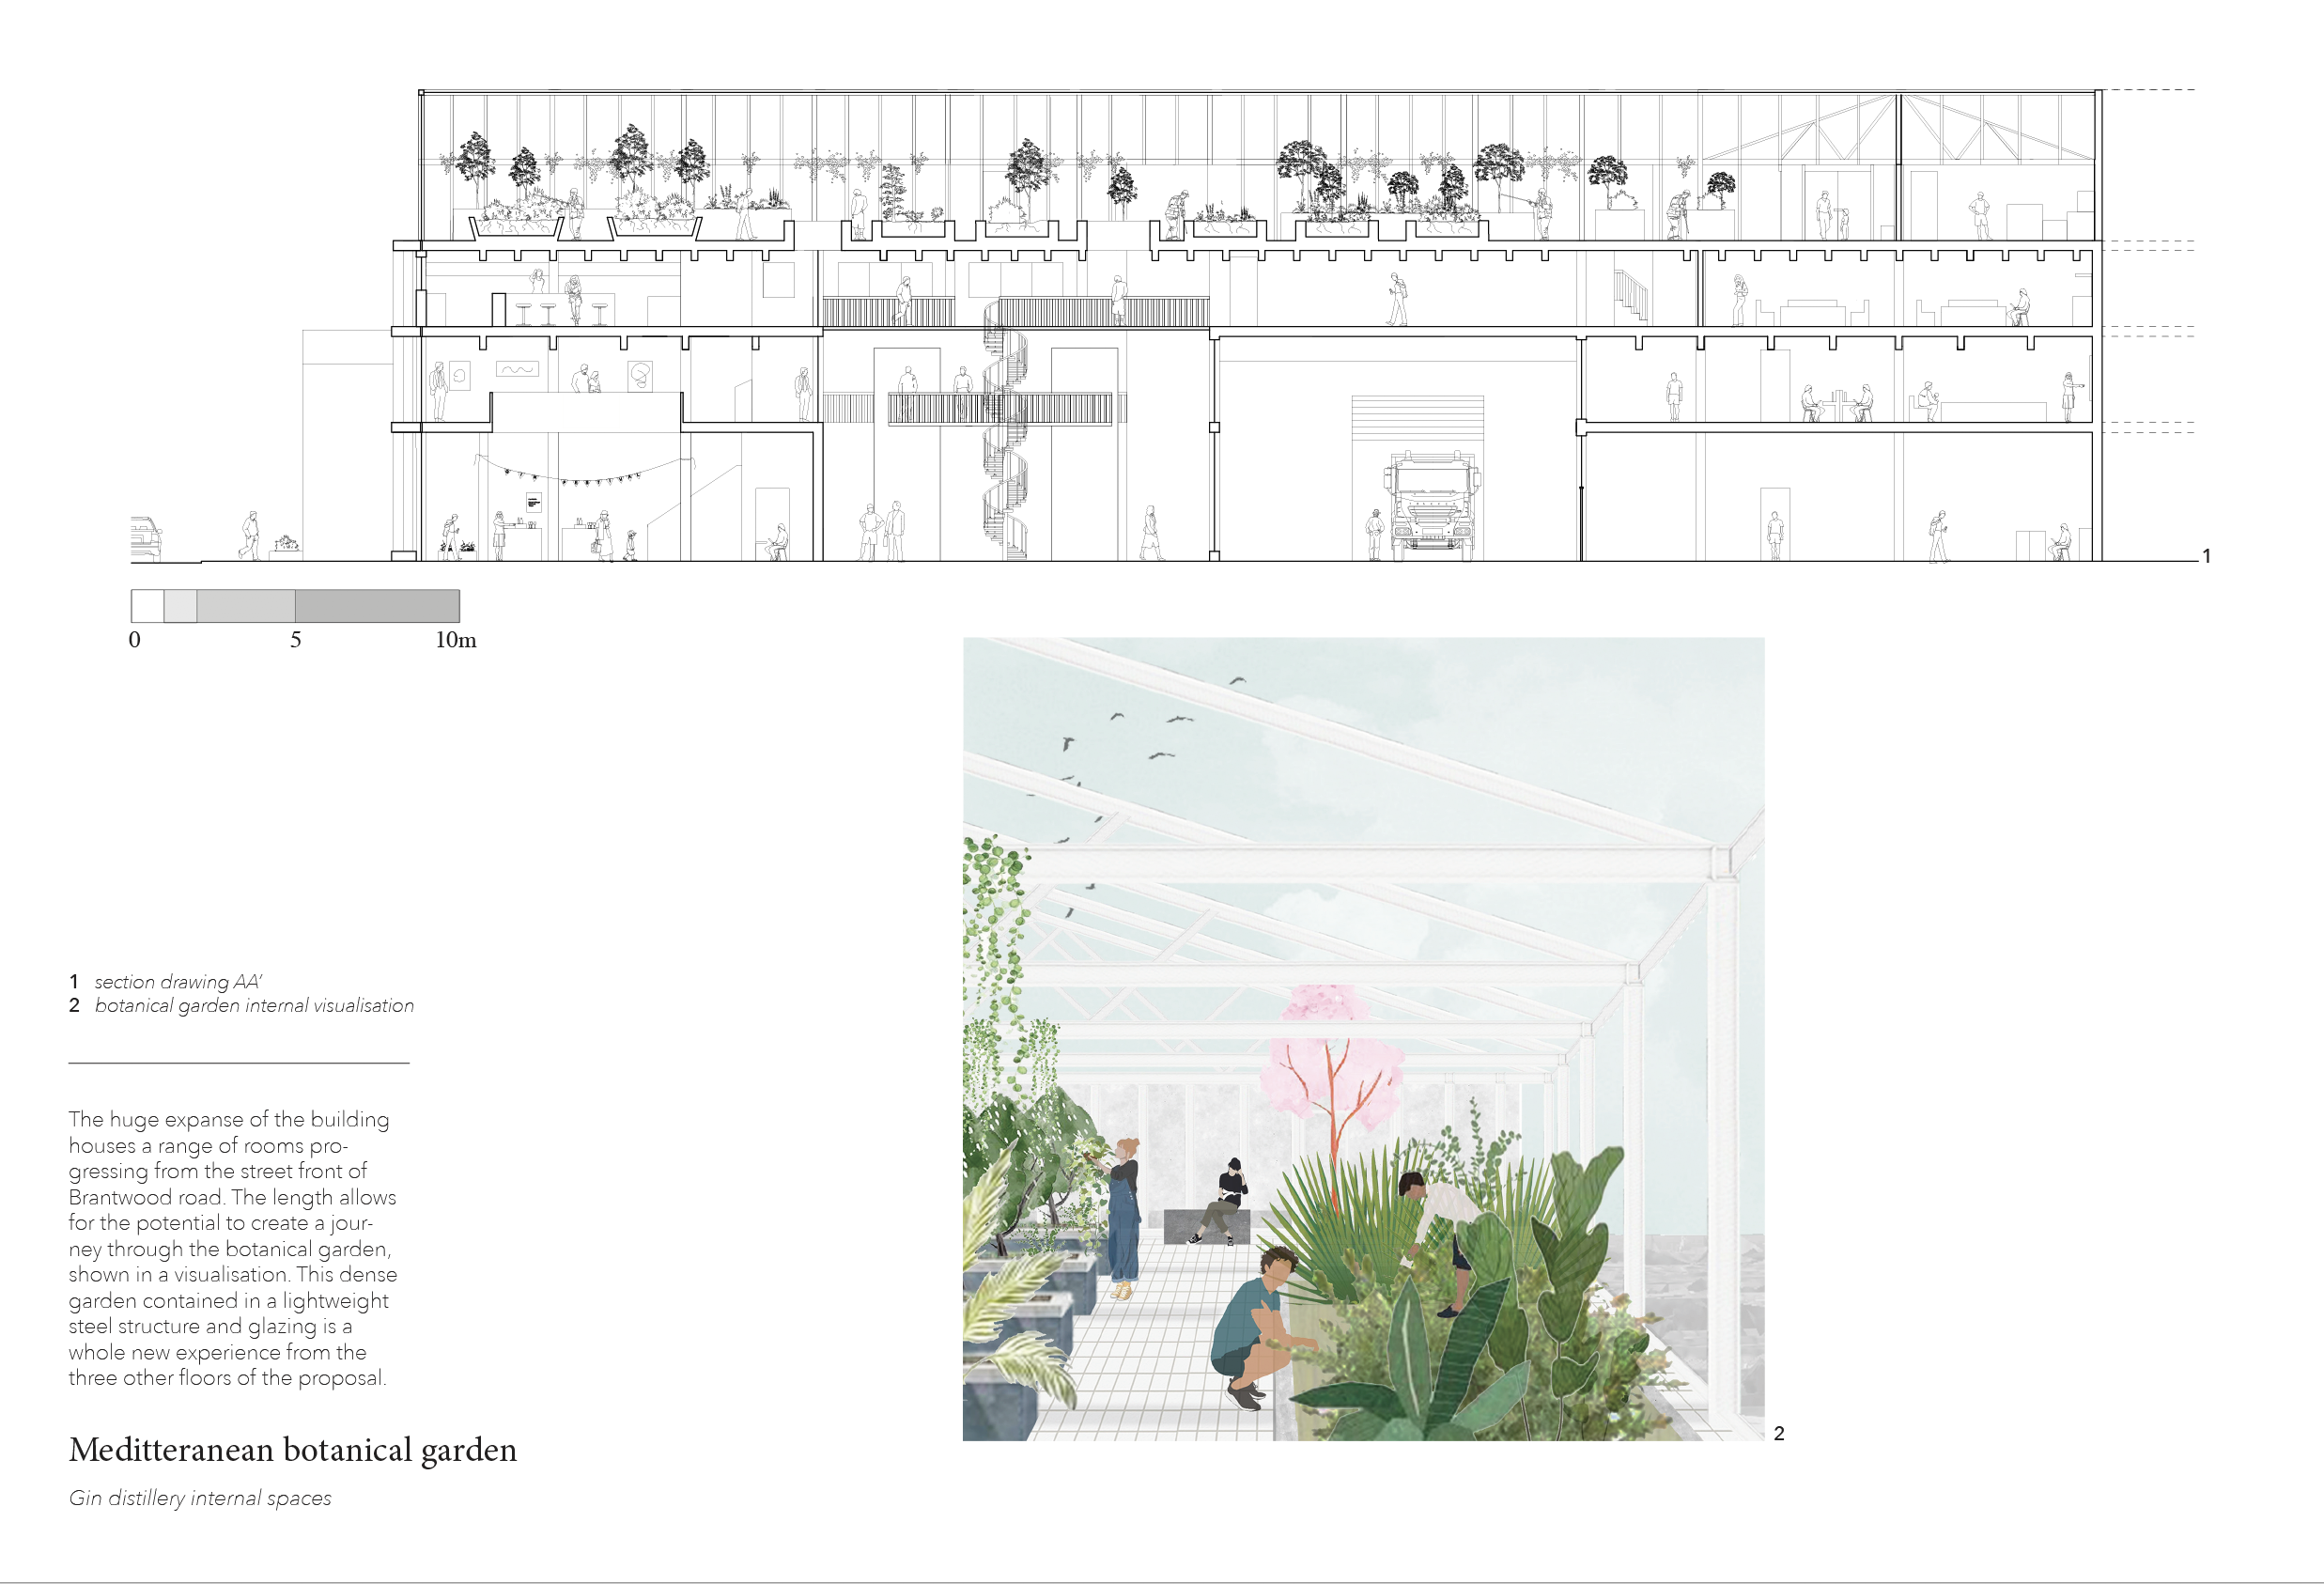 the upper part of the page shows a section displaying all functions of the gin works. The image at the bottom of the oage shows plants growing in the upper part of the building - the greenhouse